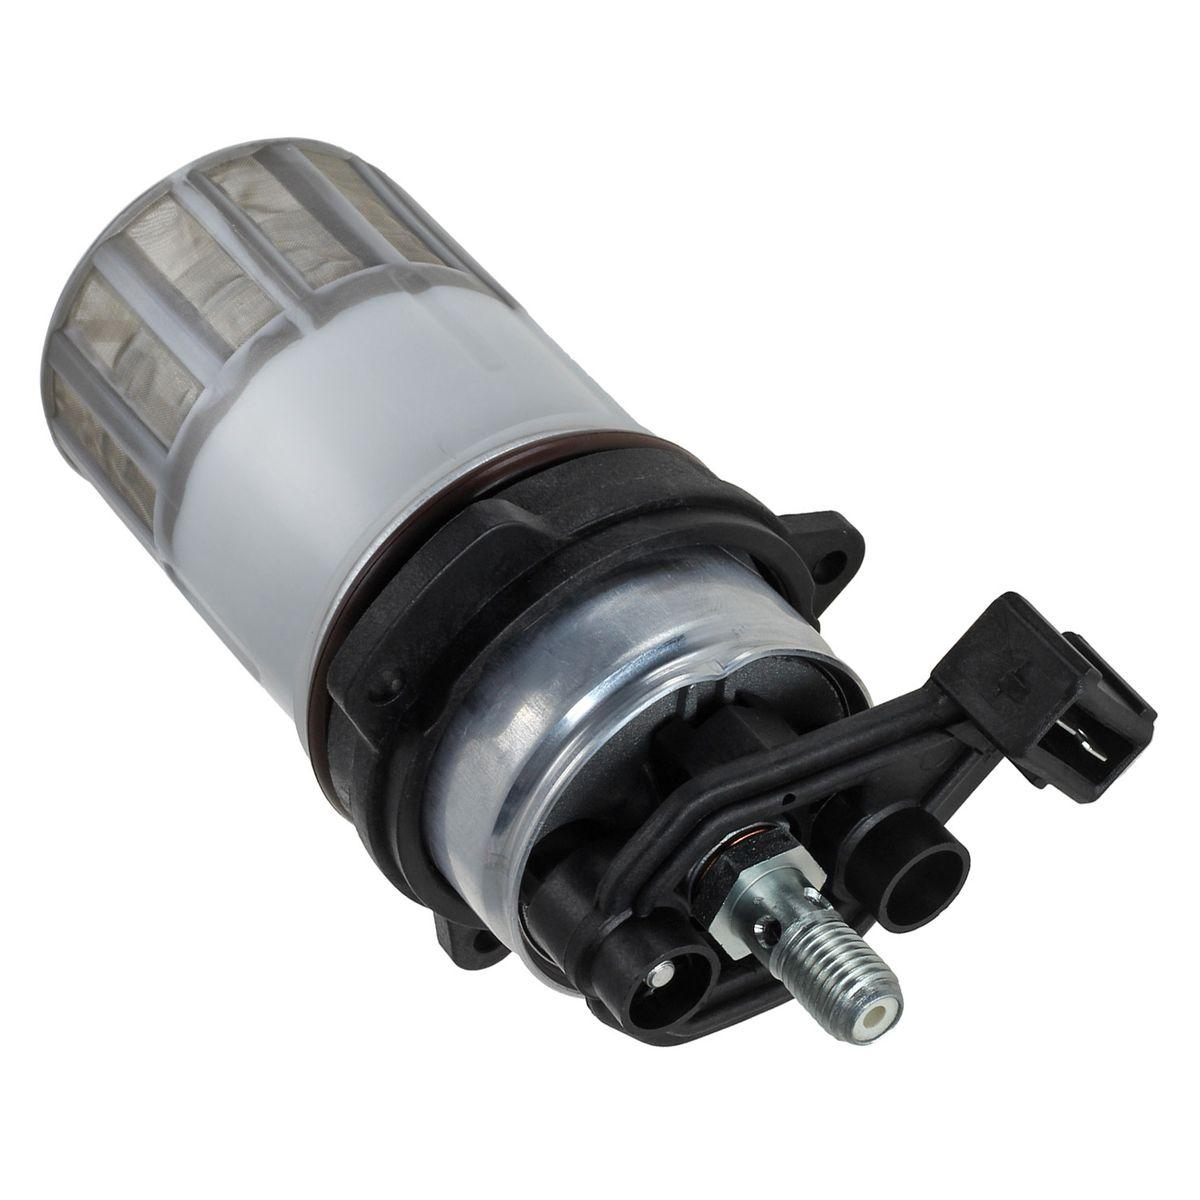 Vw Golf Fuel Pump Wiring Diagrams E8428 Electric In Line 2 3 8 Dia For Volkswagen Relay Location Failure